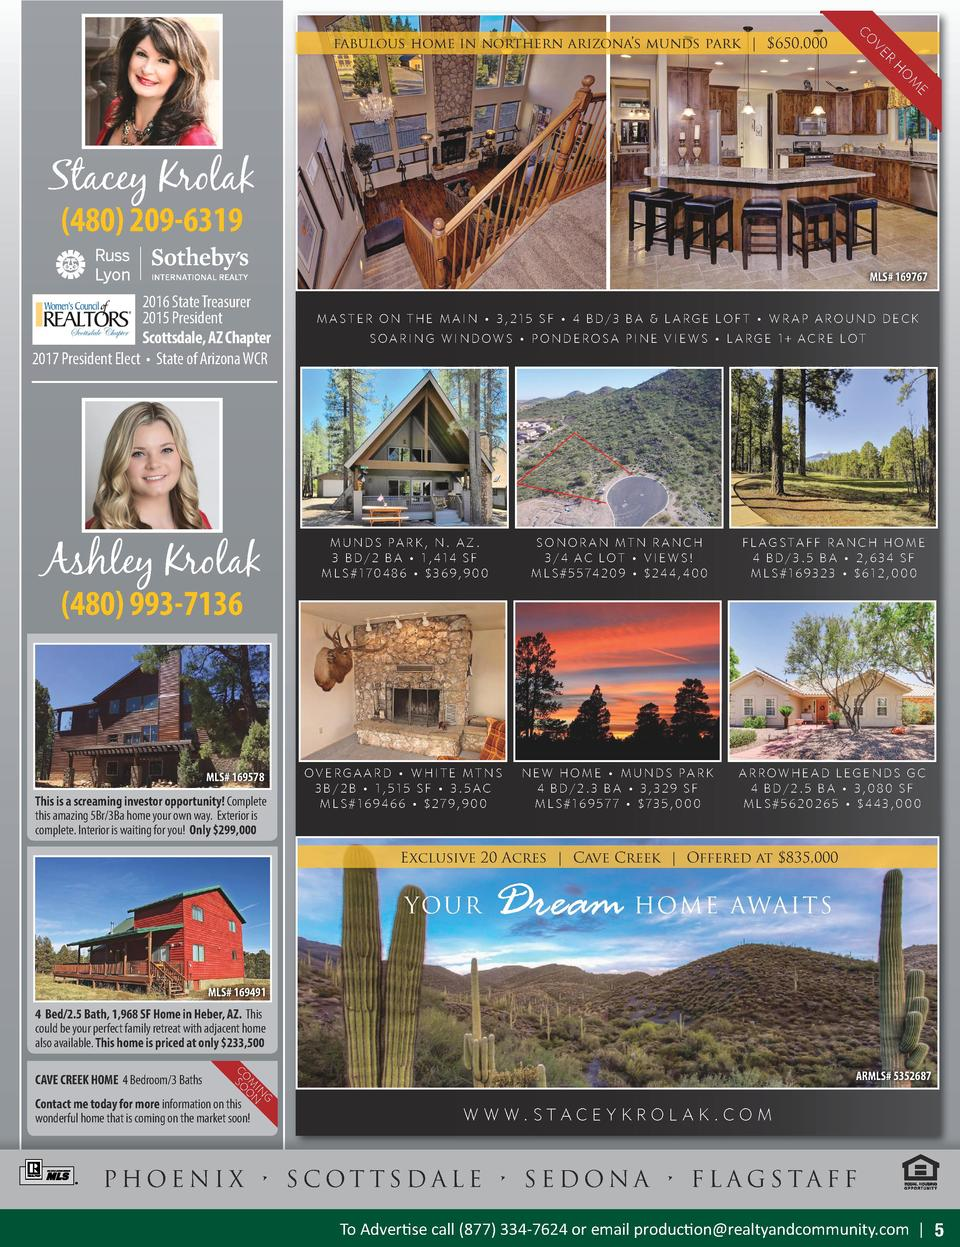 R VE CO  fabulous home in northern arizona   s munds park    650,000  E M O H  Stacey Krolak  480  209-6319  MLS 5514733 1...